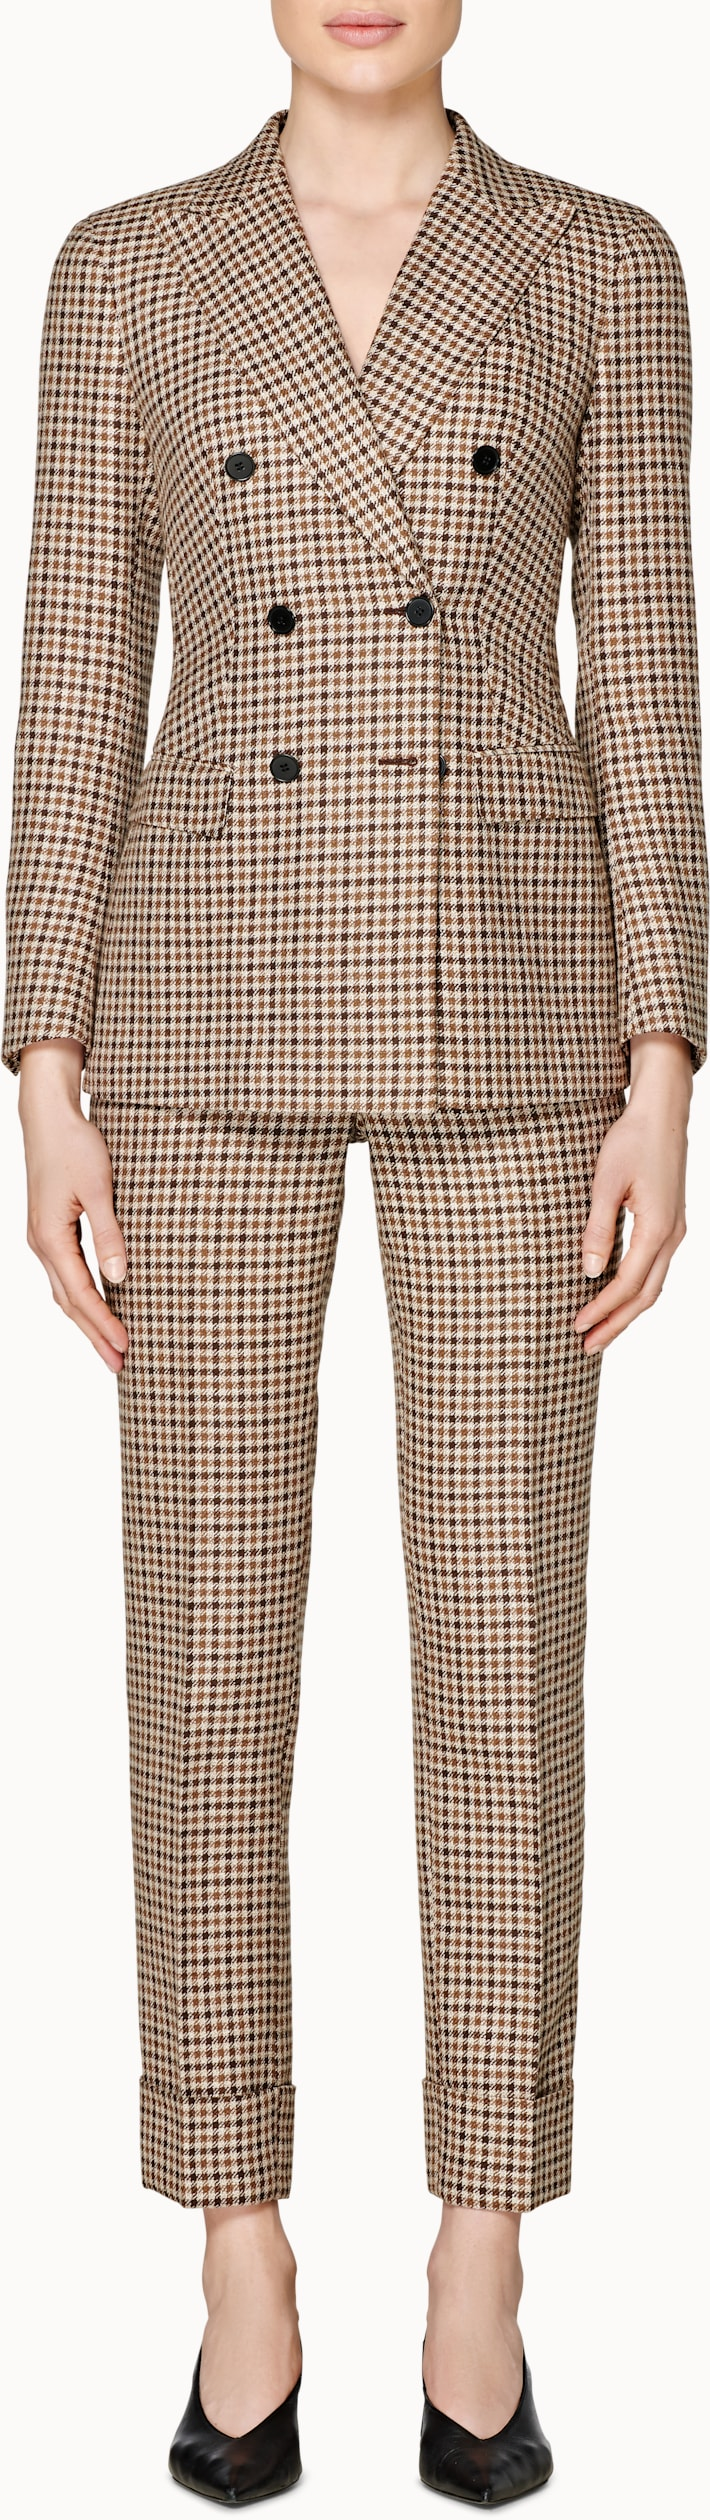 Cameron Brown Checked Suit